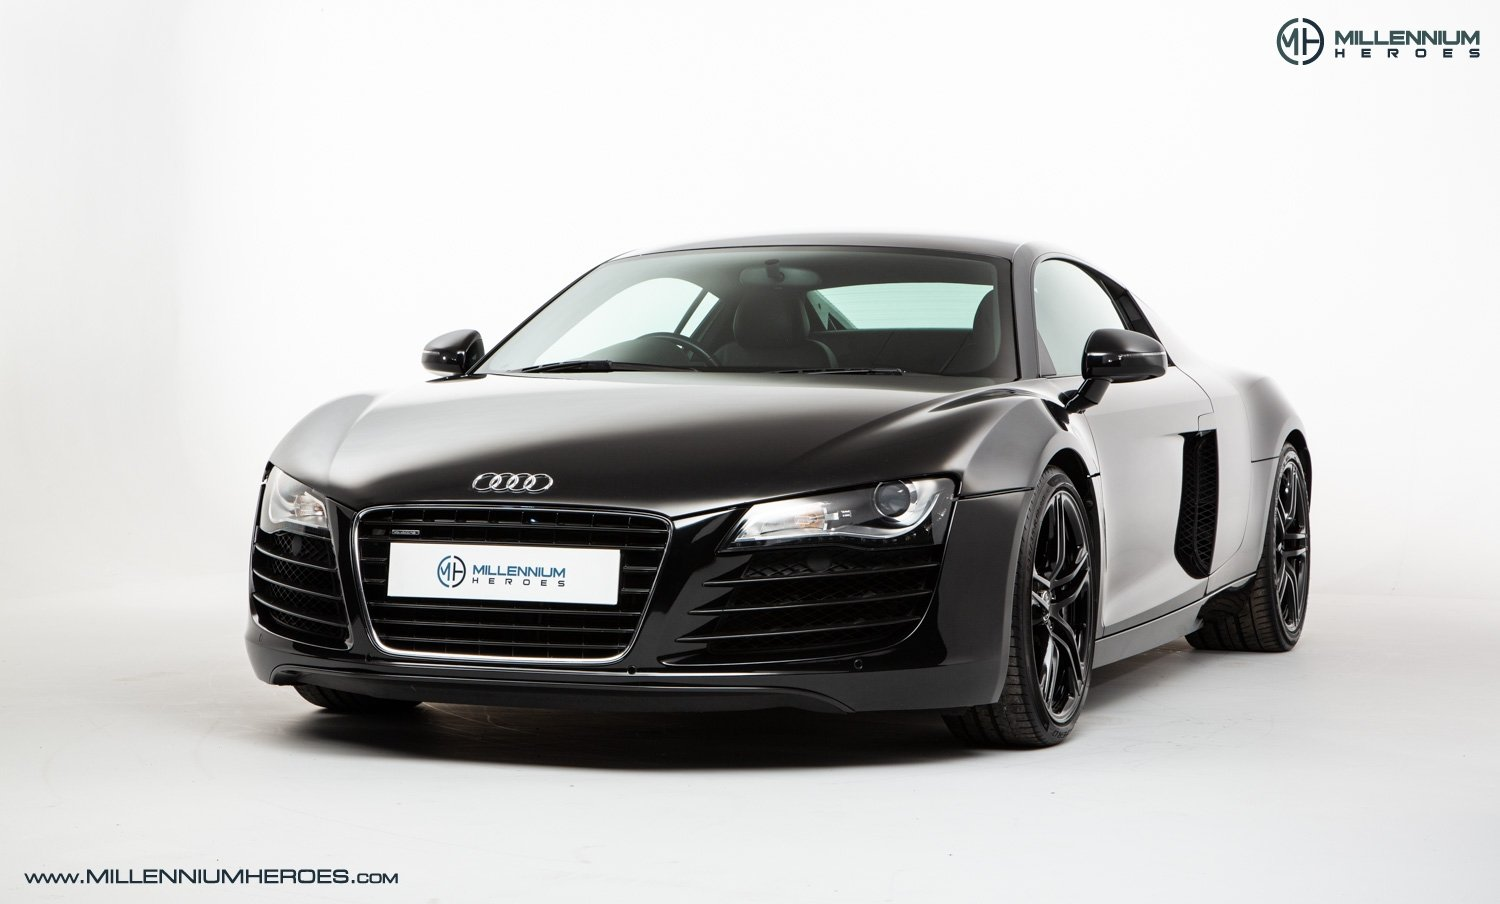 2008 AUDI R8 QUATTRO // 6 SPEED MANUAL // FULL AUDI SERVICE HISTO For Sale (picture 1 of 19)